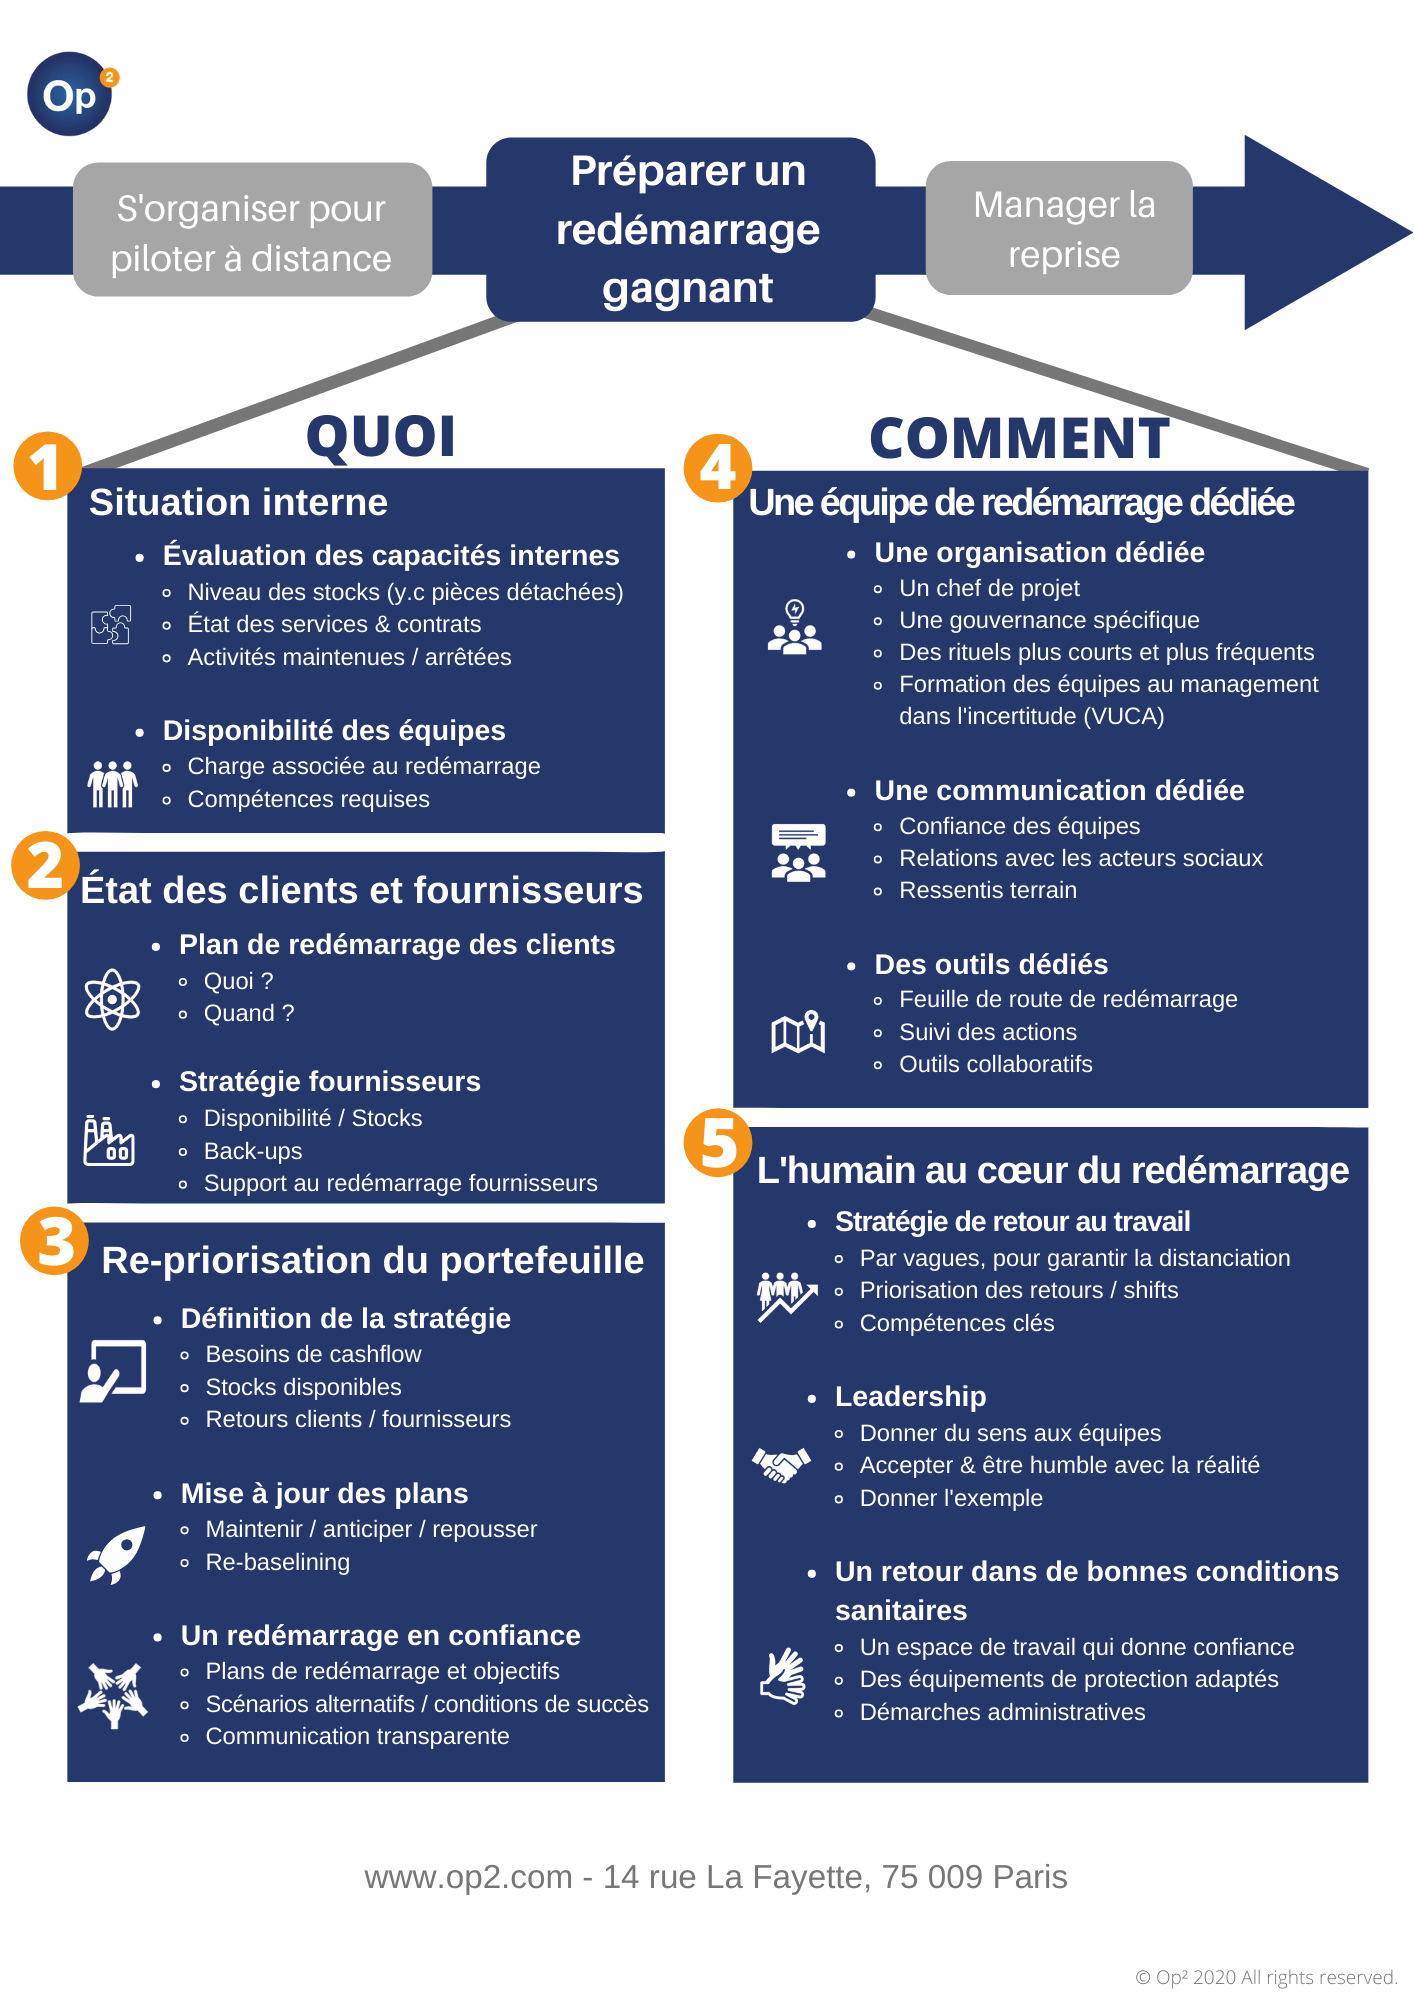 copie-de-dedicated-re-start-project-management-dedicated-organization-assigned-coordinator-crisis-governance-quick-decision-loops-prepare-the-teams-to-uncertainty-vuca-dedicated-communication-sta-2